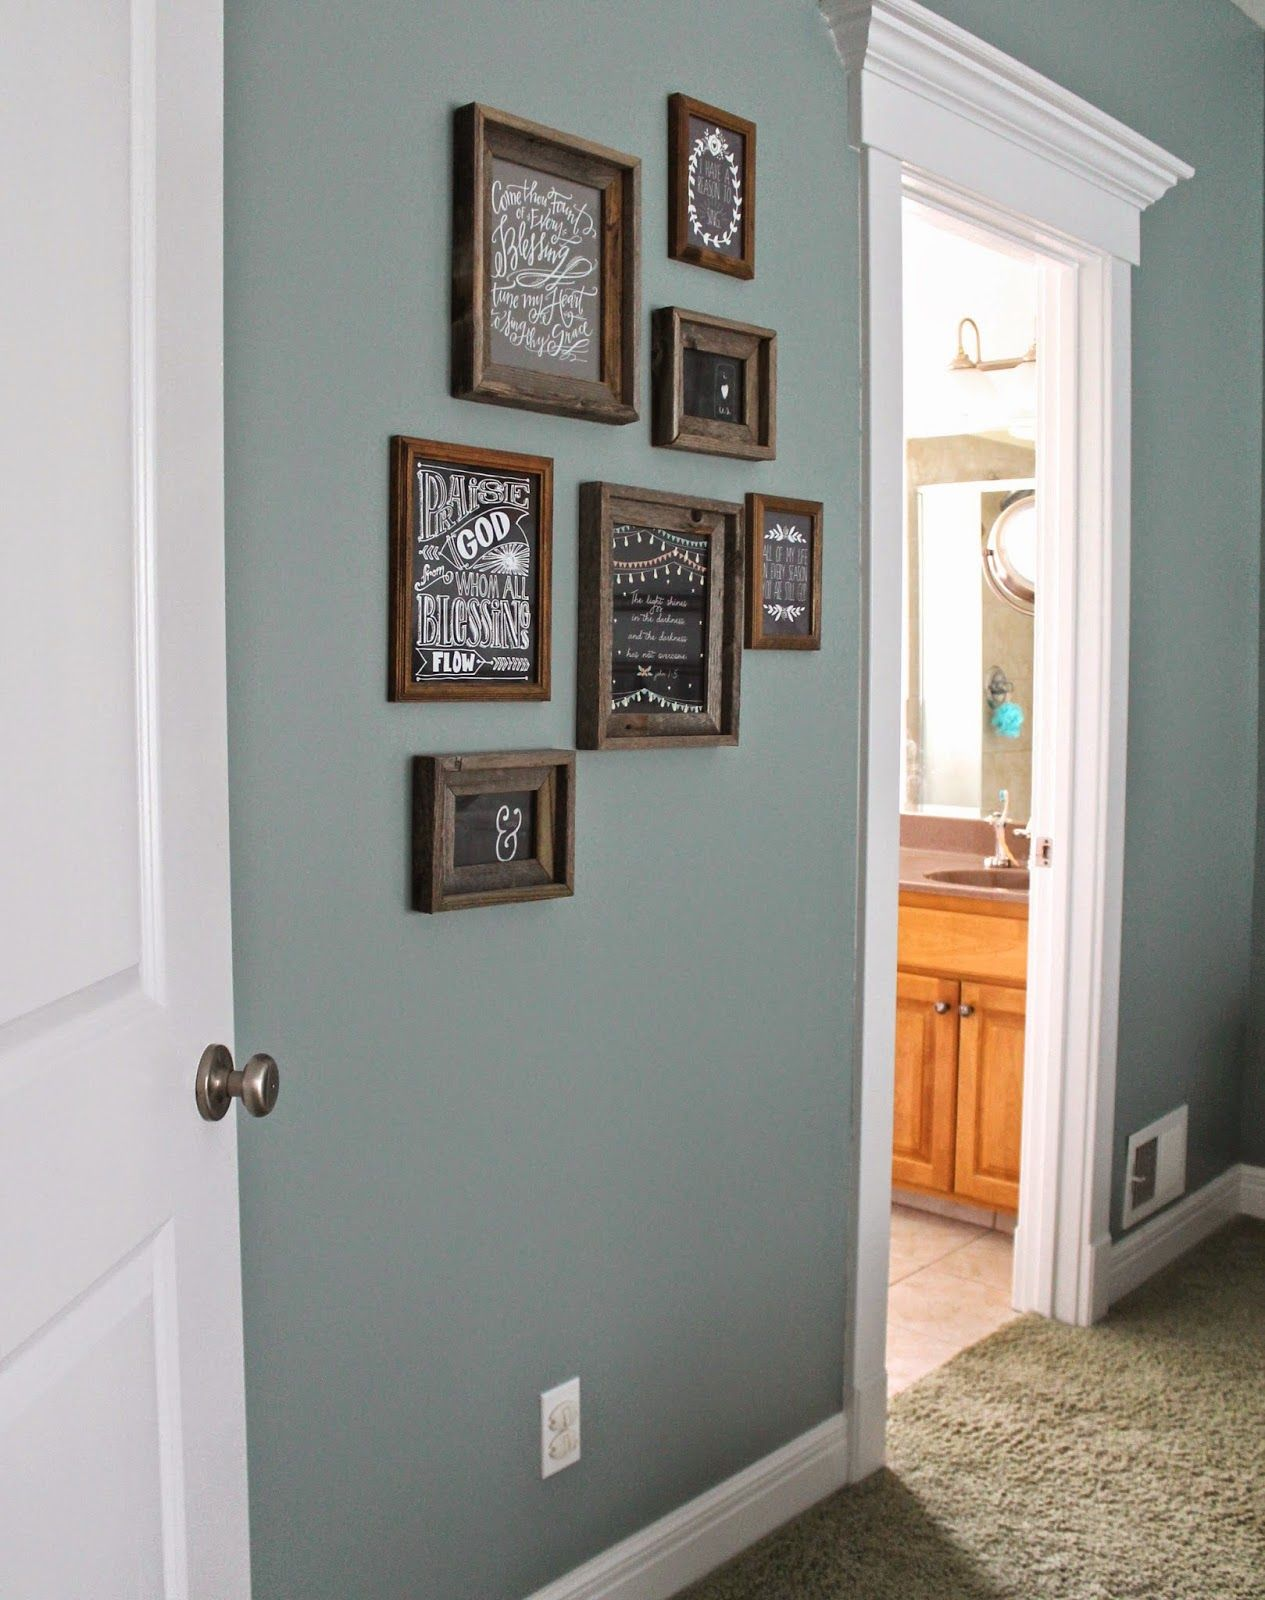 Paint color valspar blue arrow dark rustic frames hobby for Wall colors for dark rooms